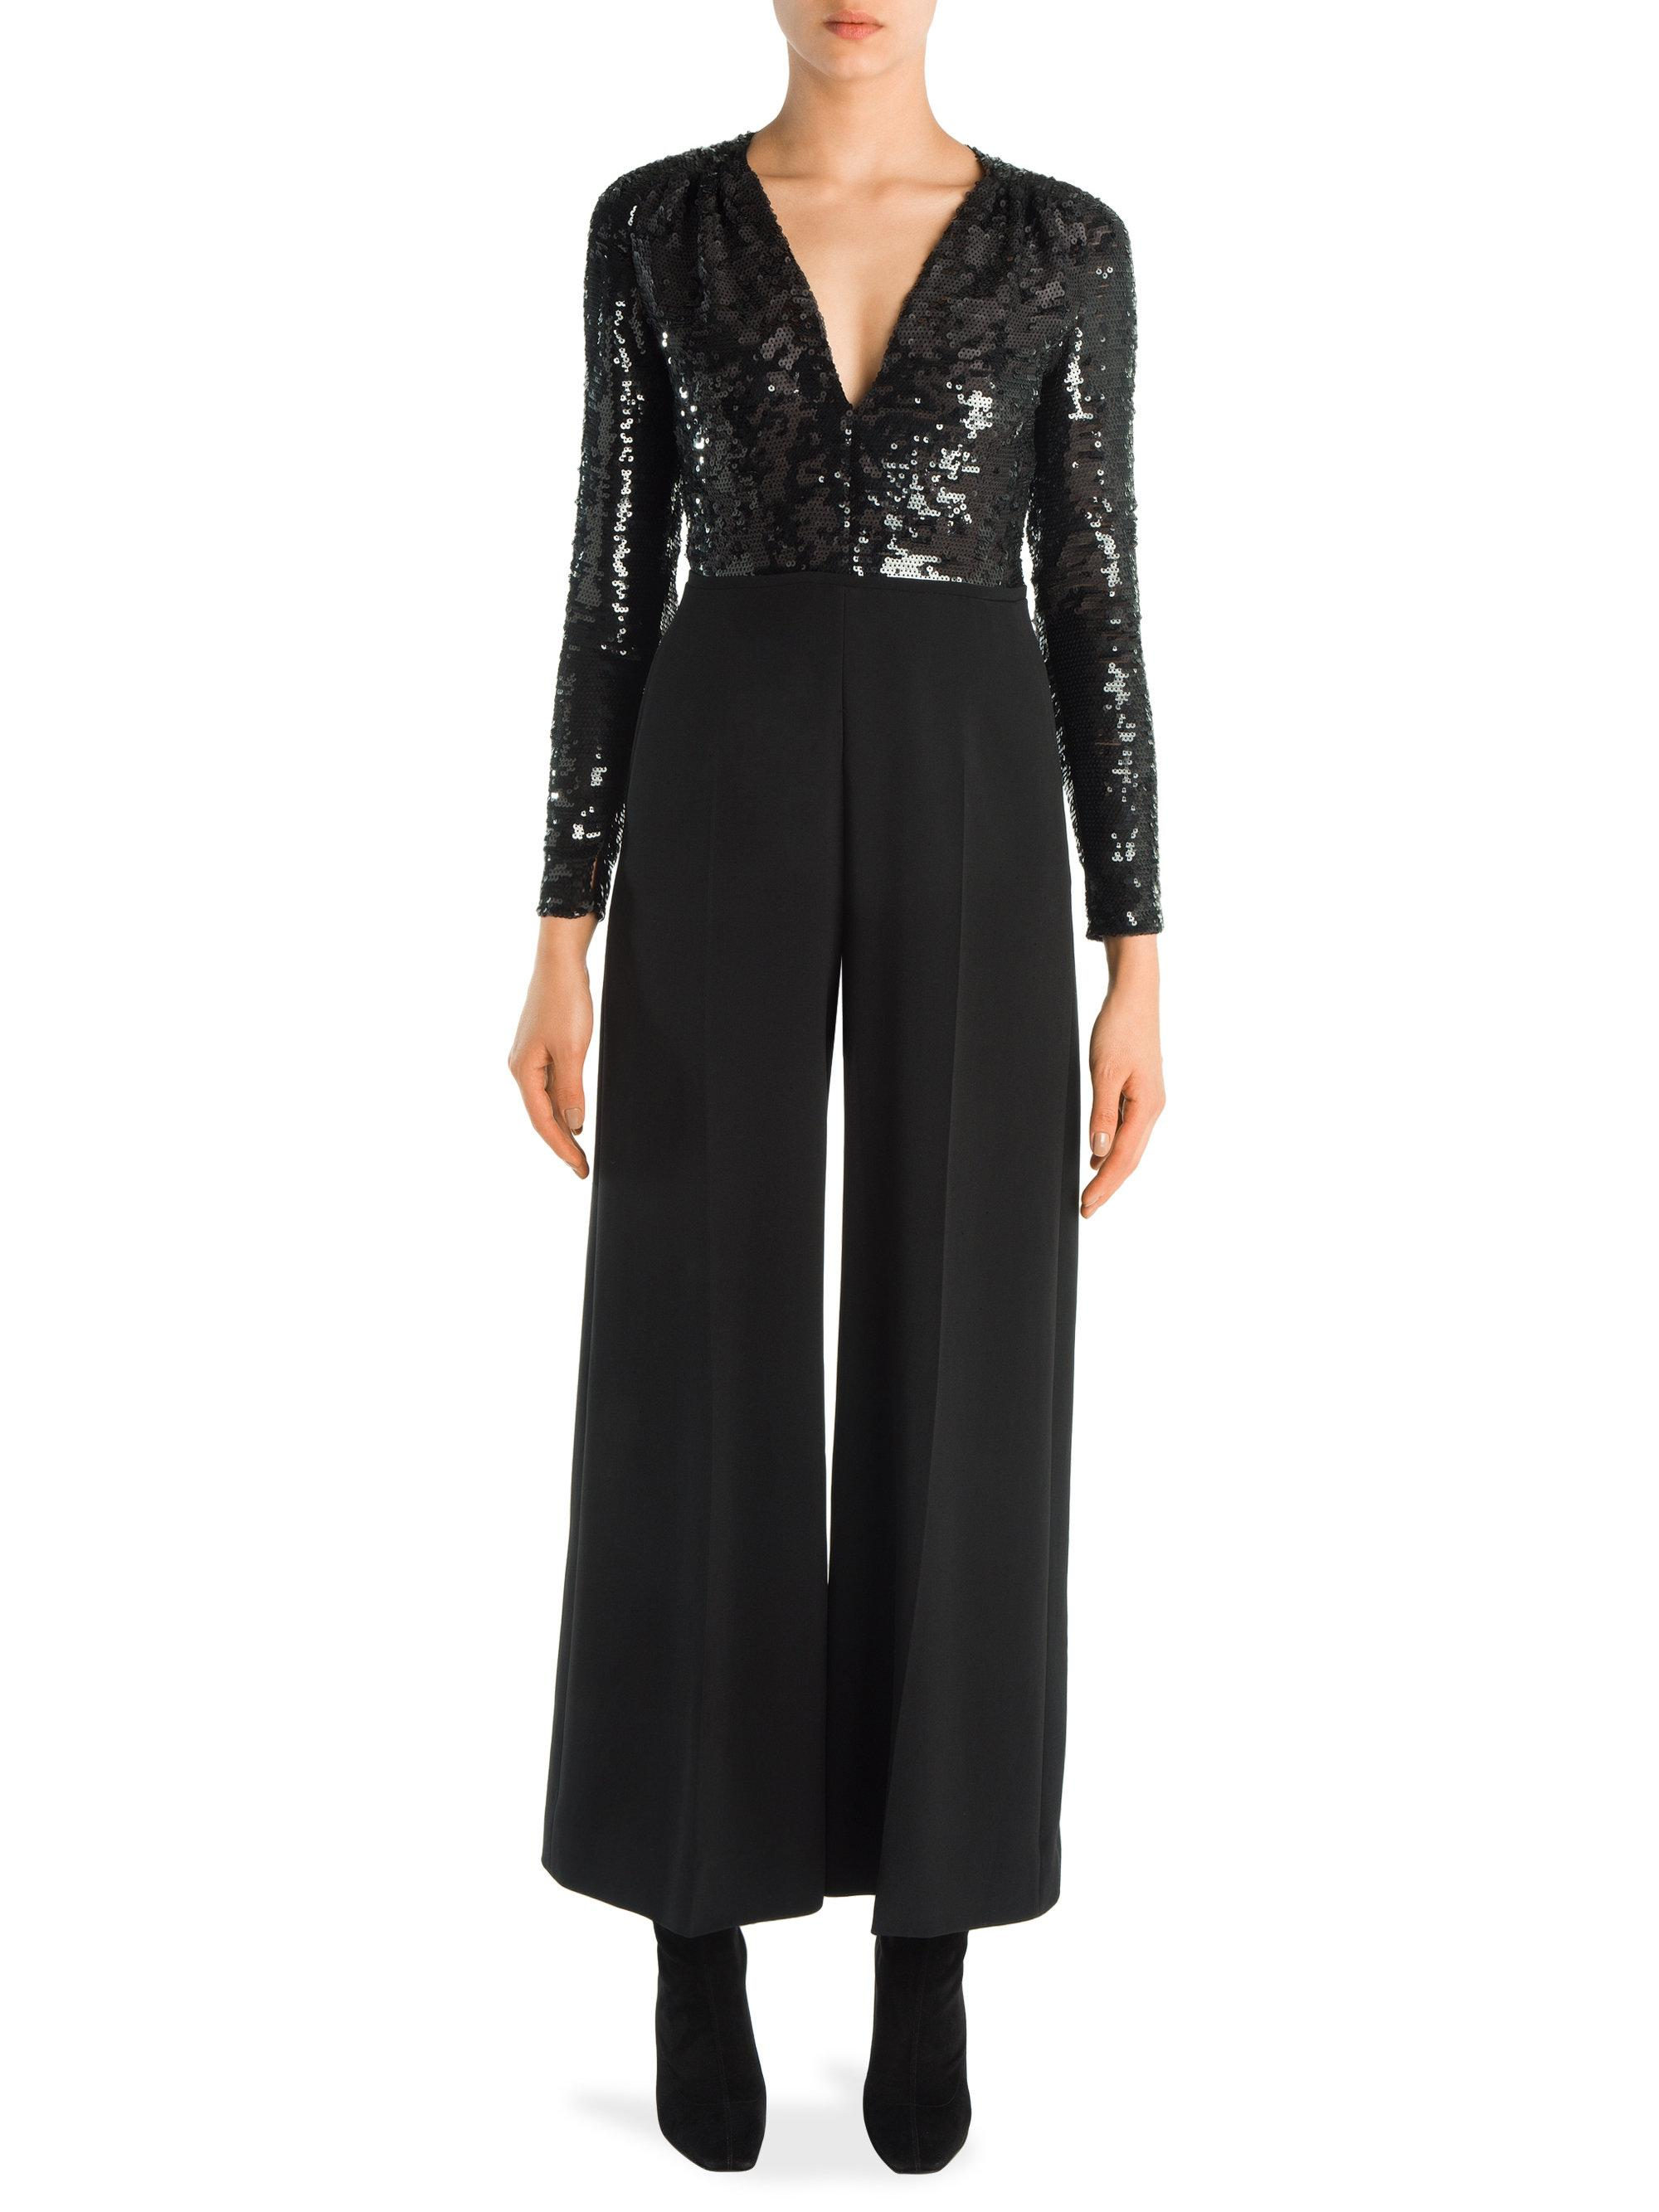 2310ba6e7c58 Gallery. Previously sold at  Saks Fifth Avenue · Women s Halter Neck  Jumpsuits ...